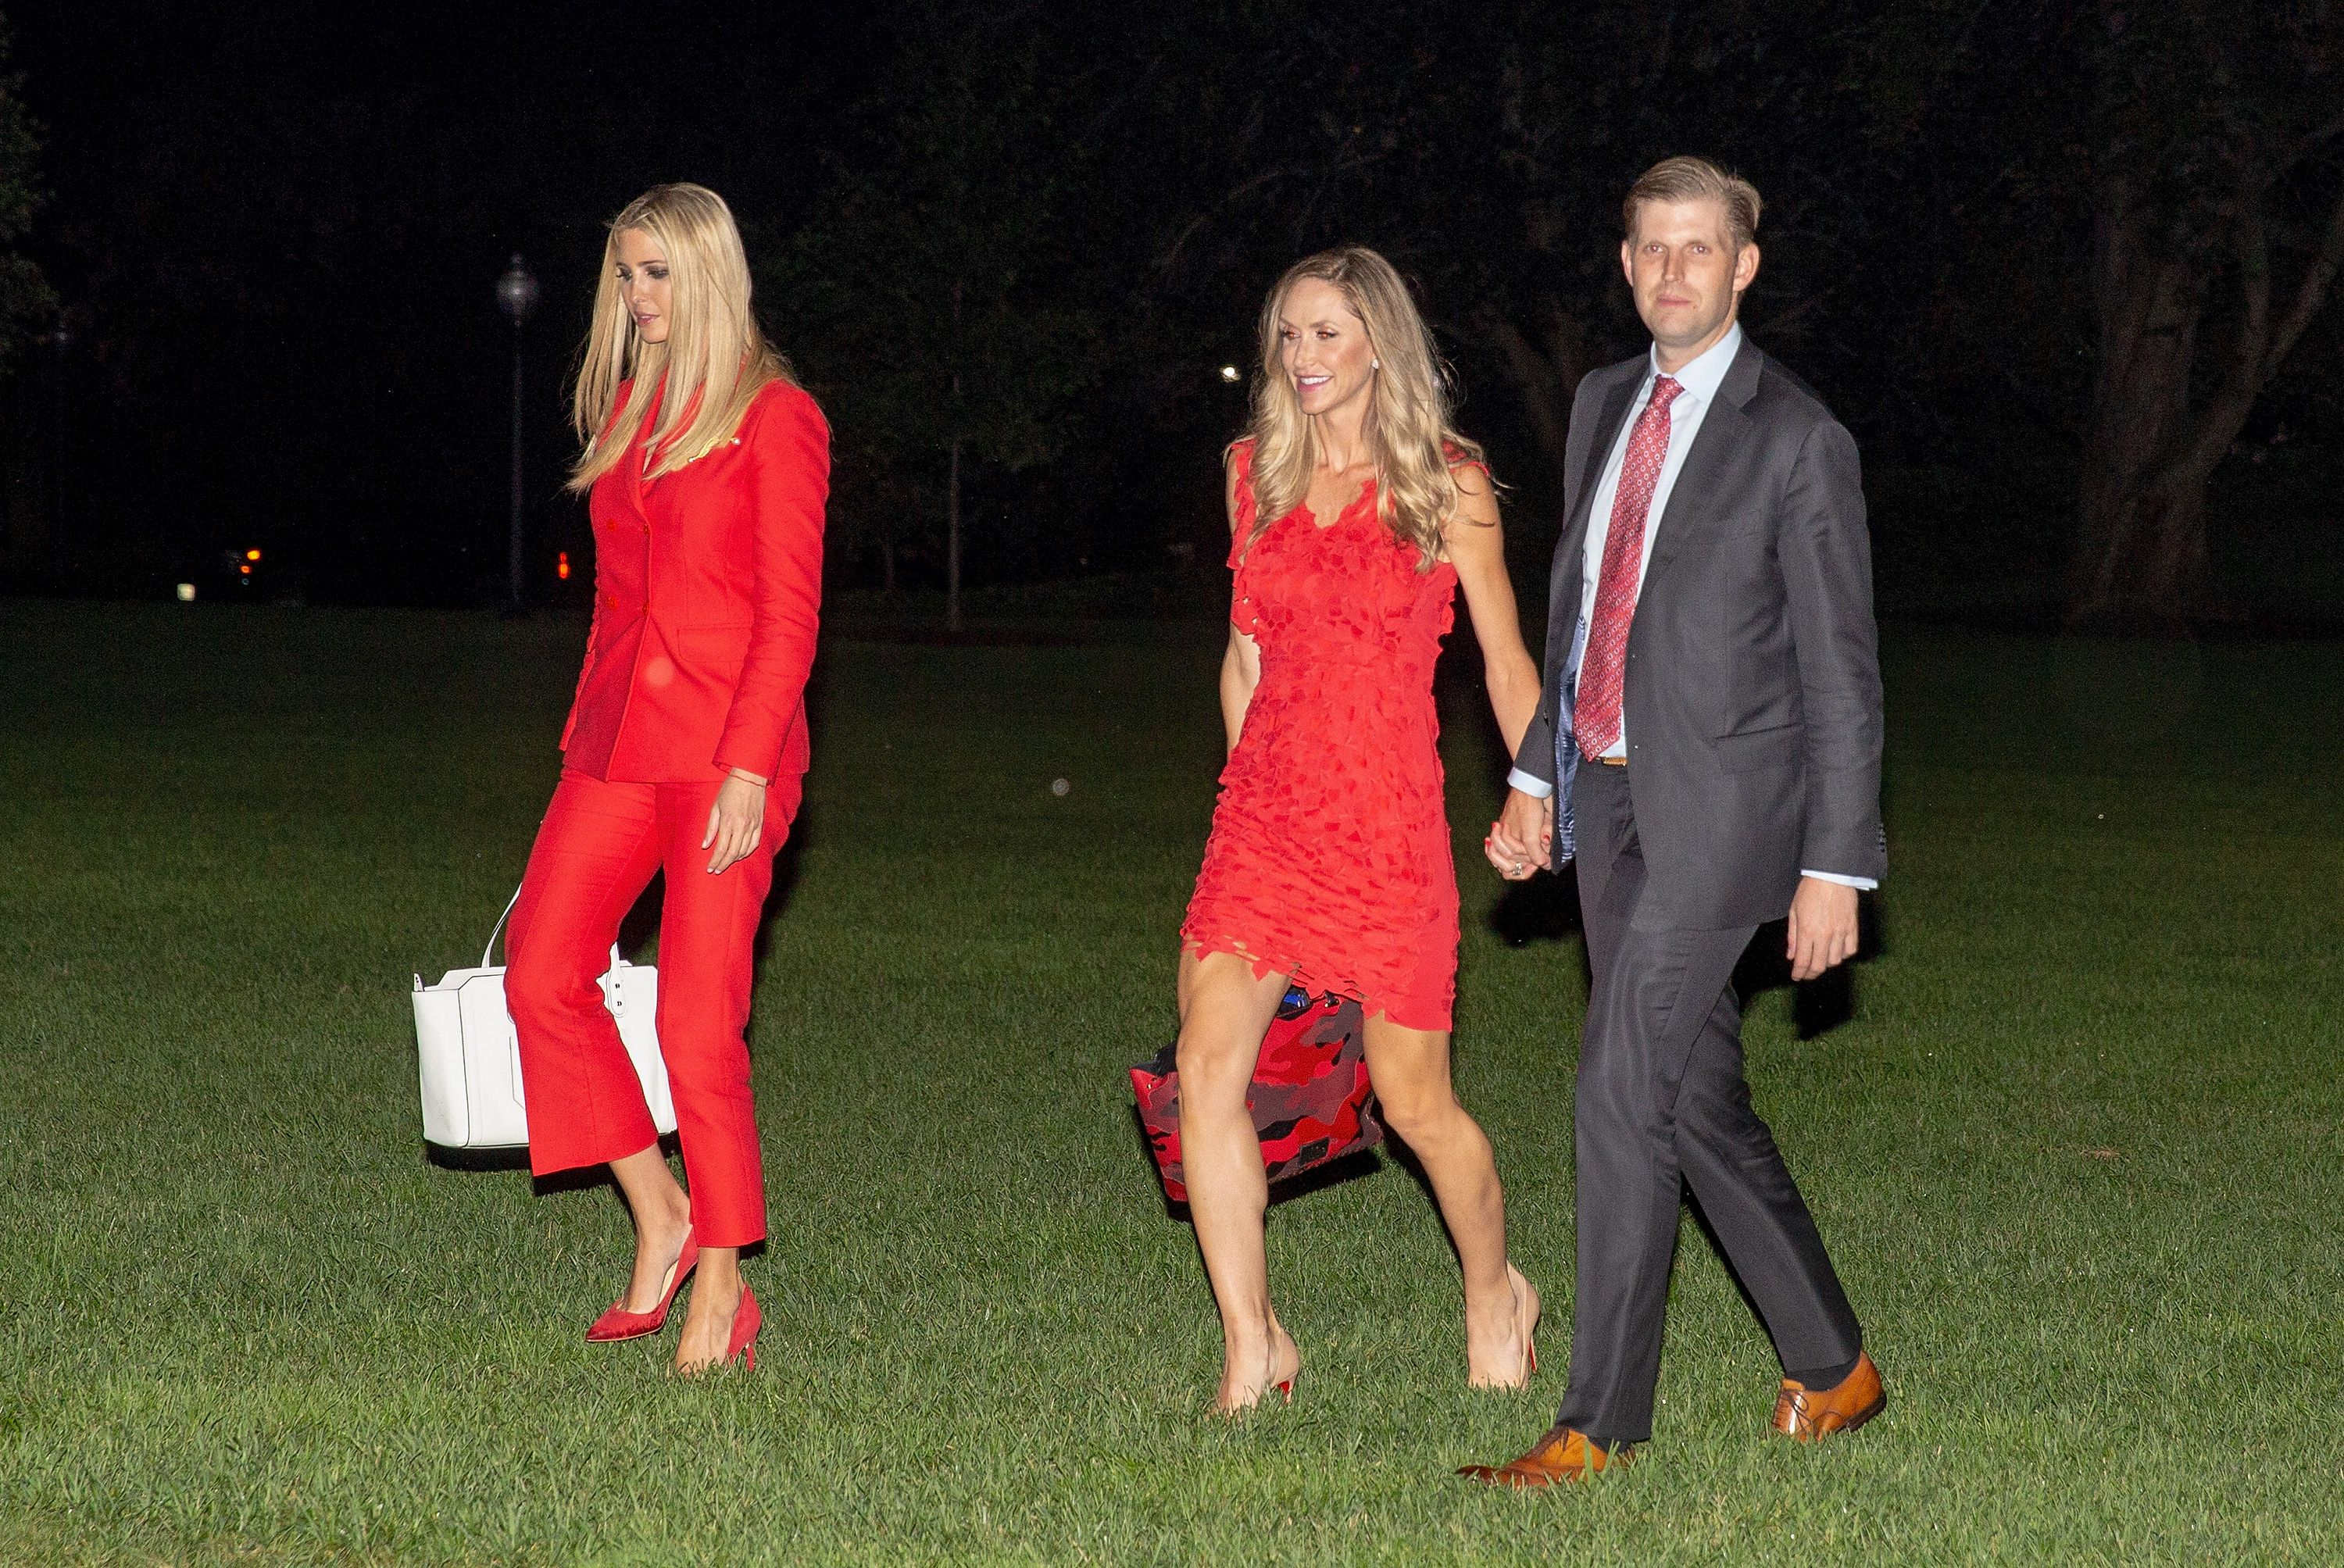 sandro suit, Ivanka Trump, Lara Trump and Eric Trump exit Marine One as they return from Tampa bay, Florida to the White House in Washington, DC, USA, 31 July 2018.President Trump returns to the White House, Washington, USA - 31 Jul 2018